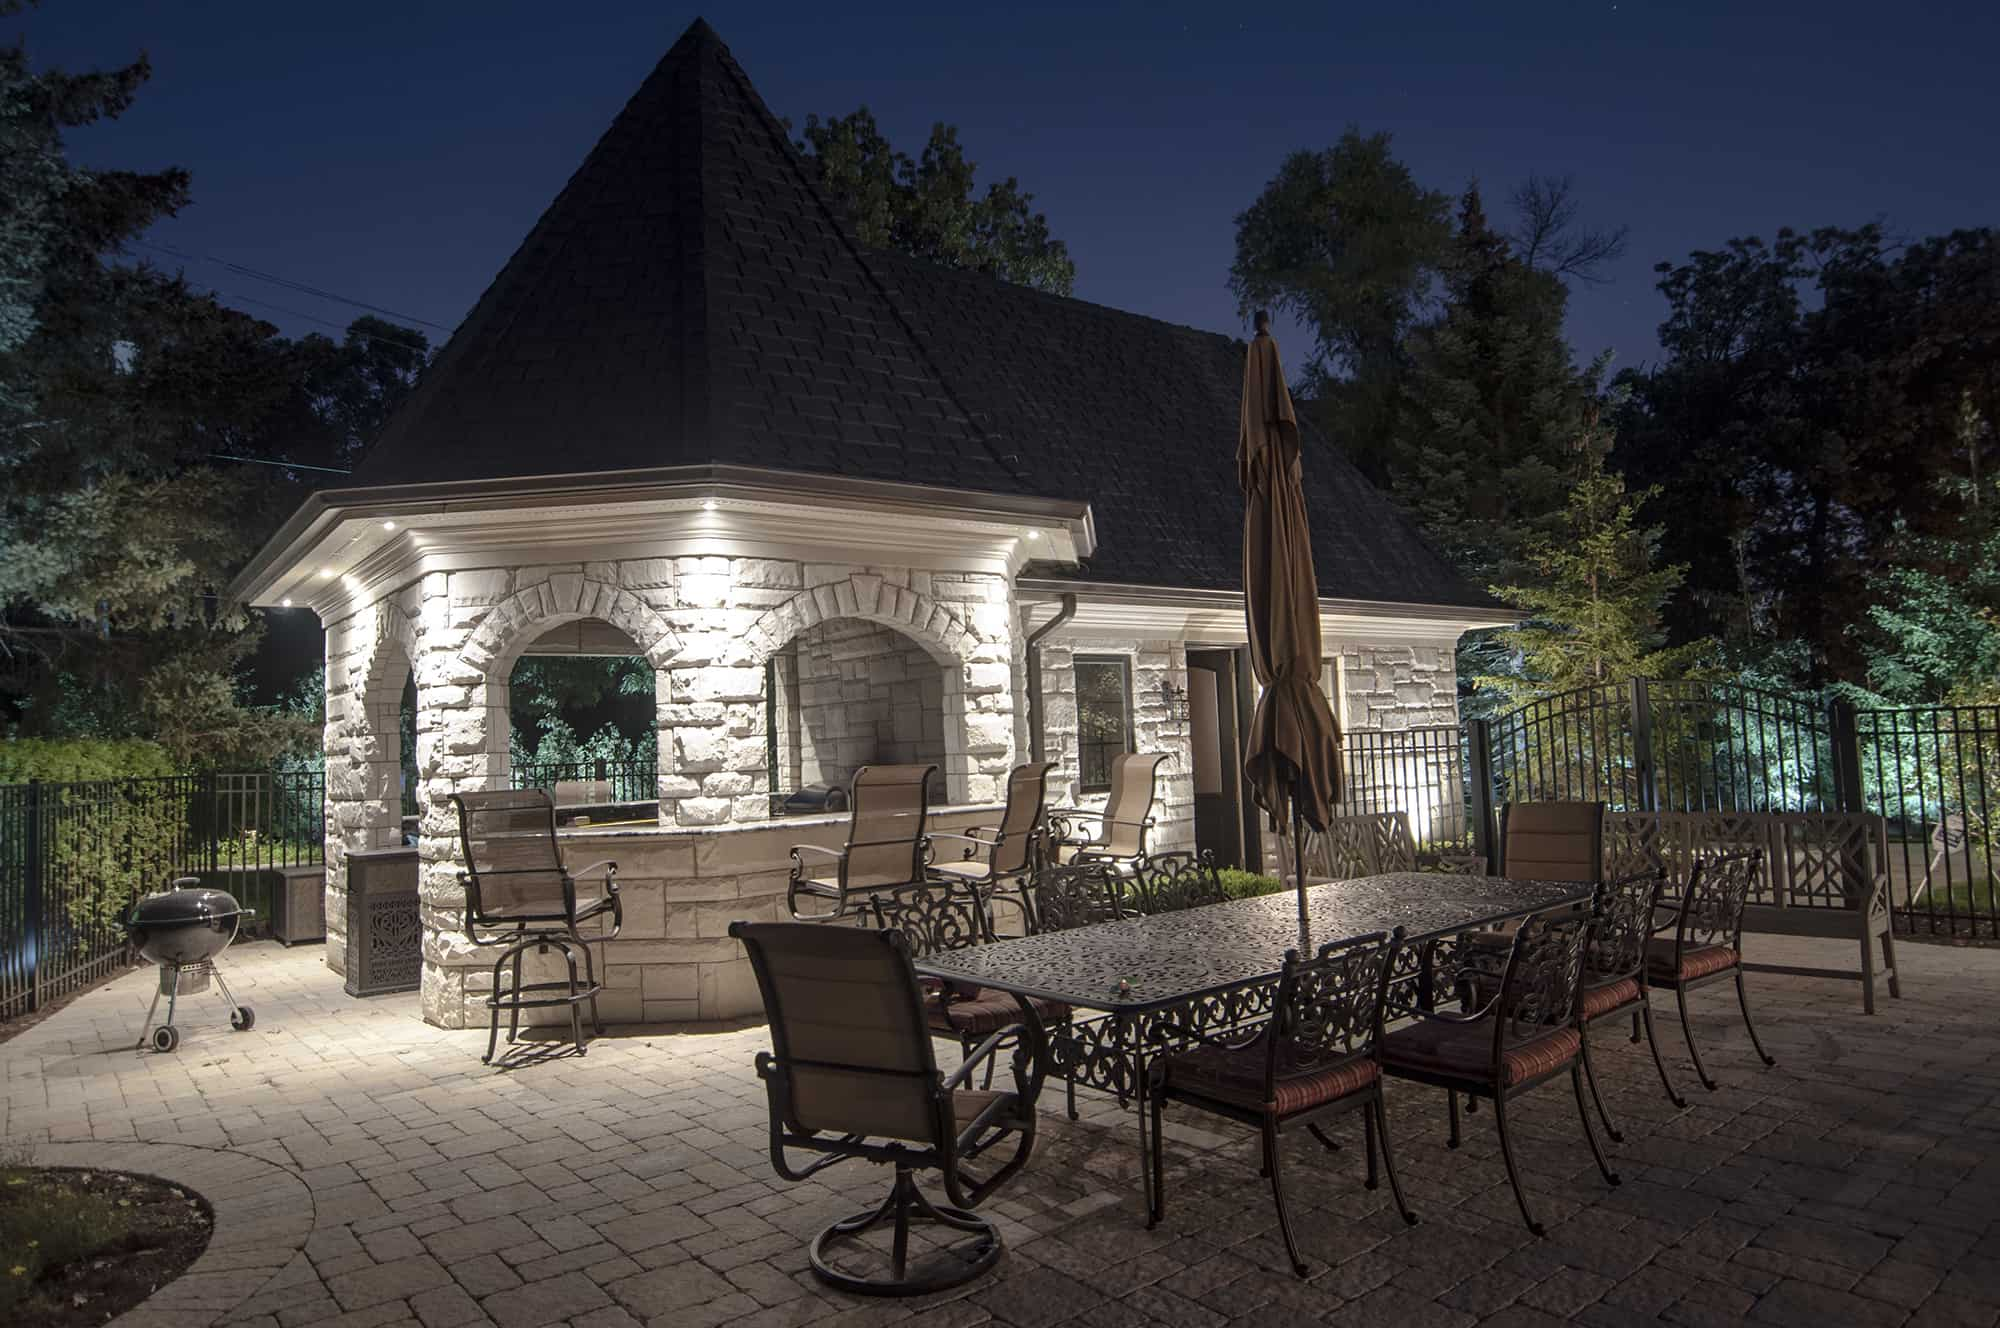 Gazebo Pergolas and Pavilions  Outdoor Lighting in Chicago IL  Outdoor Accents